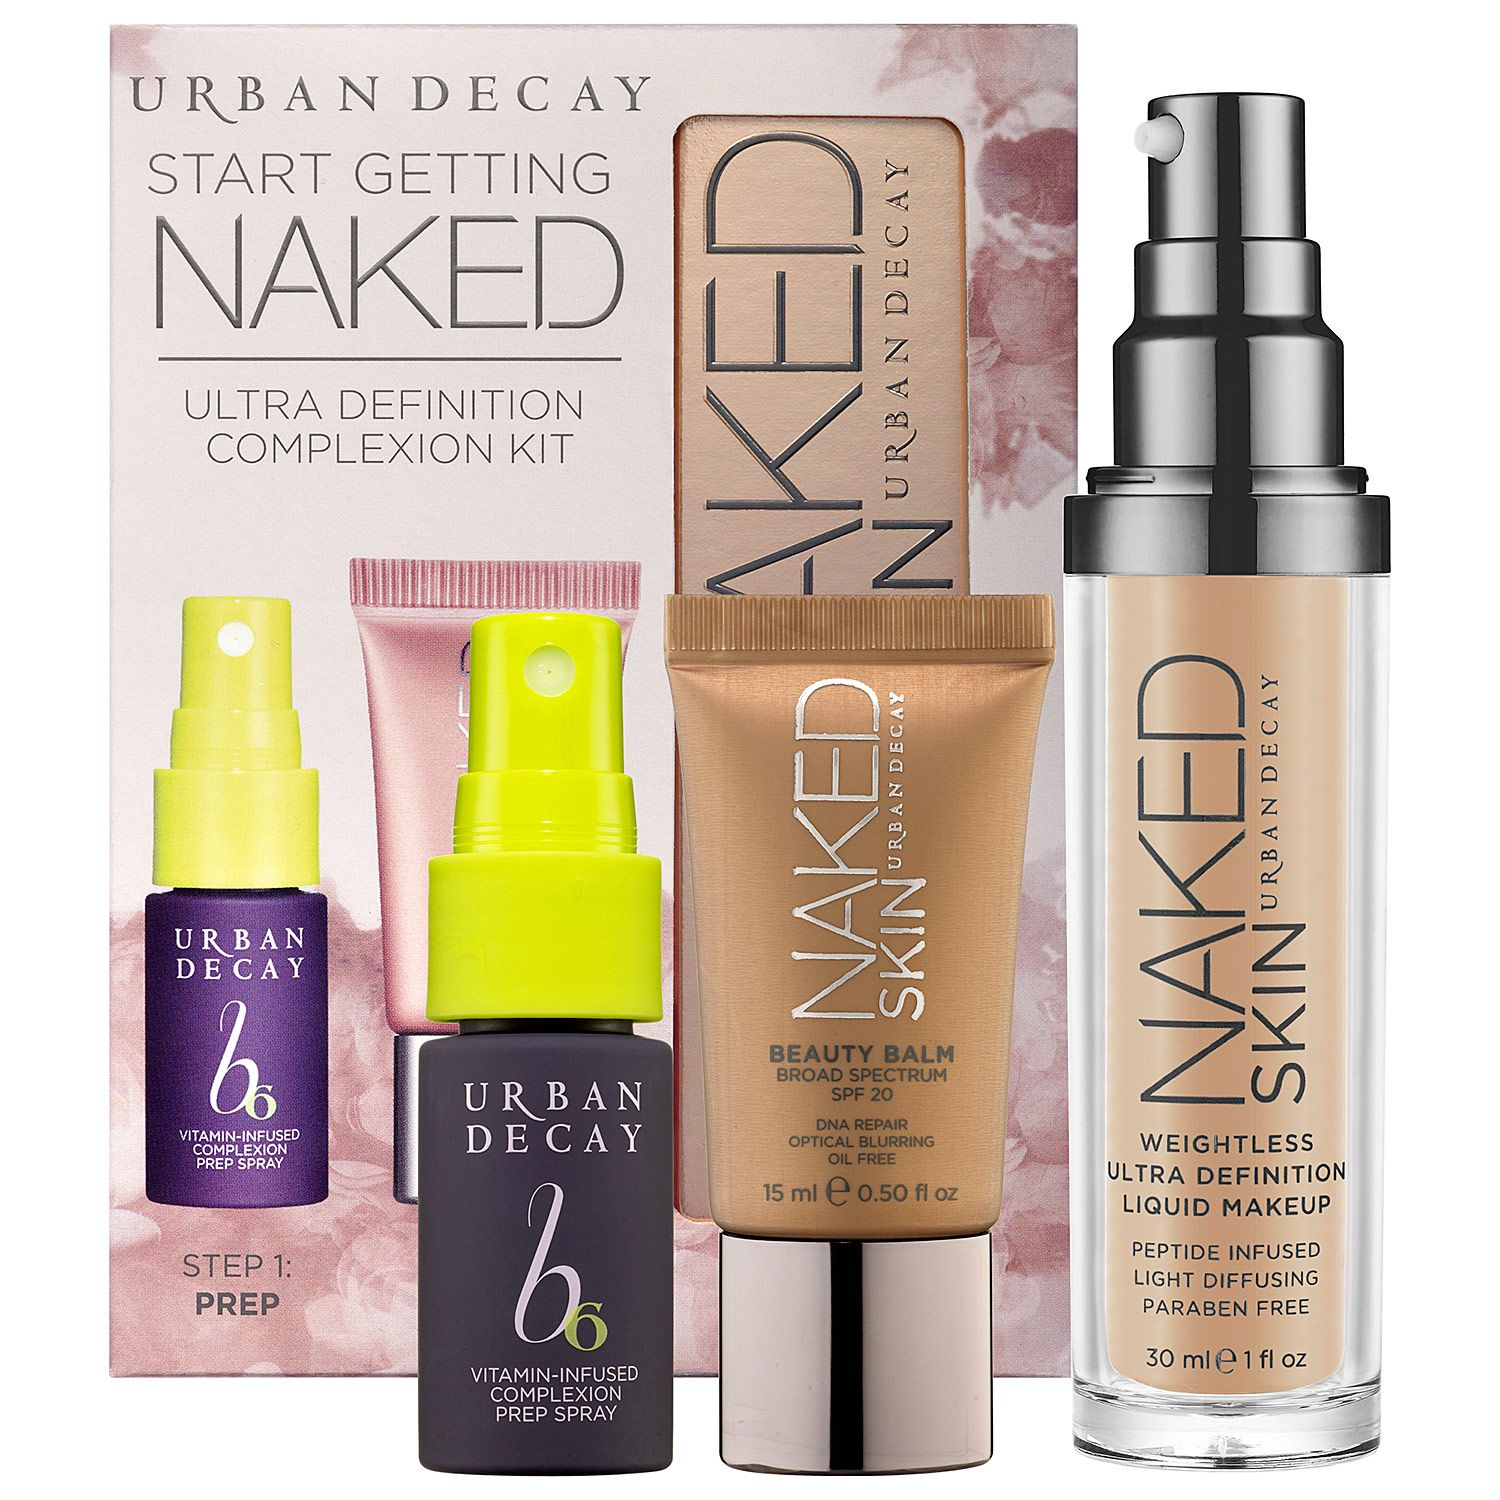 Urban Decay Start Getting Naked Ultra Definition Complexion Kit Lamp039oreal Infallible Total Cover Foundation Sephora Coloriq Makeup